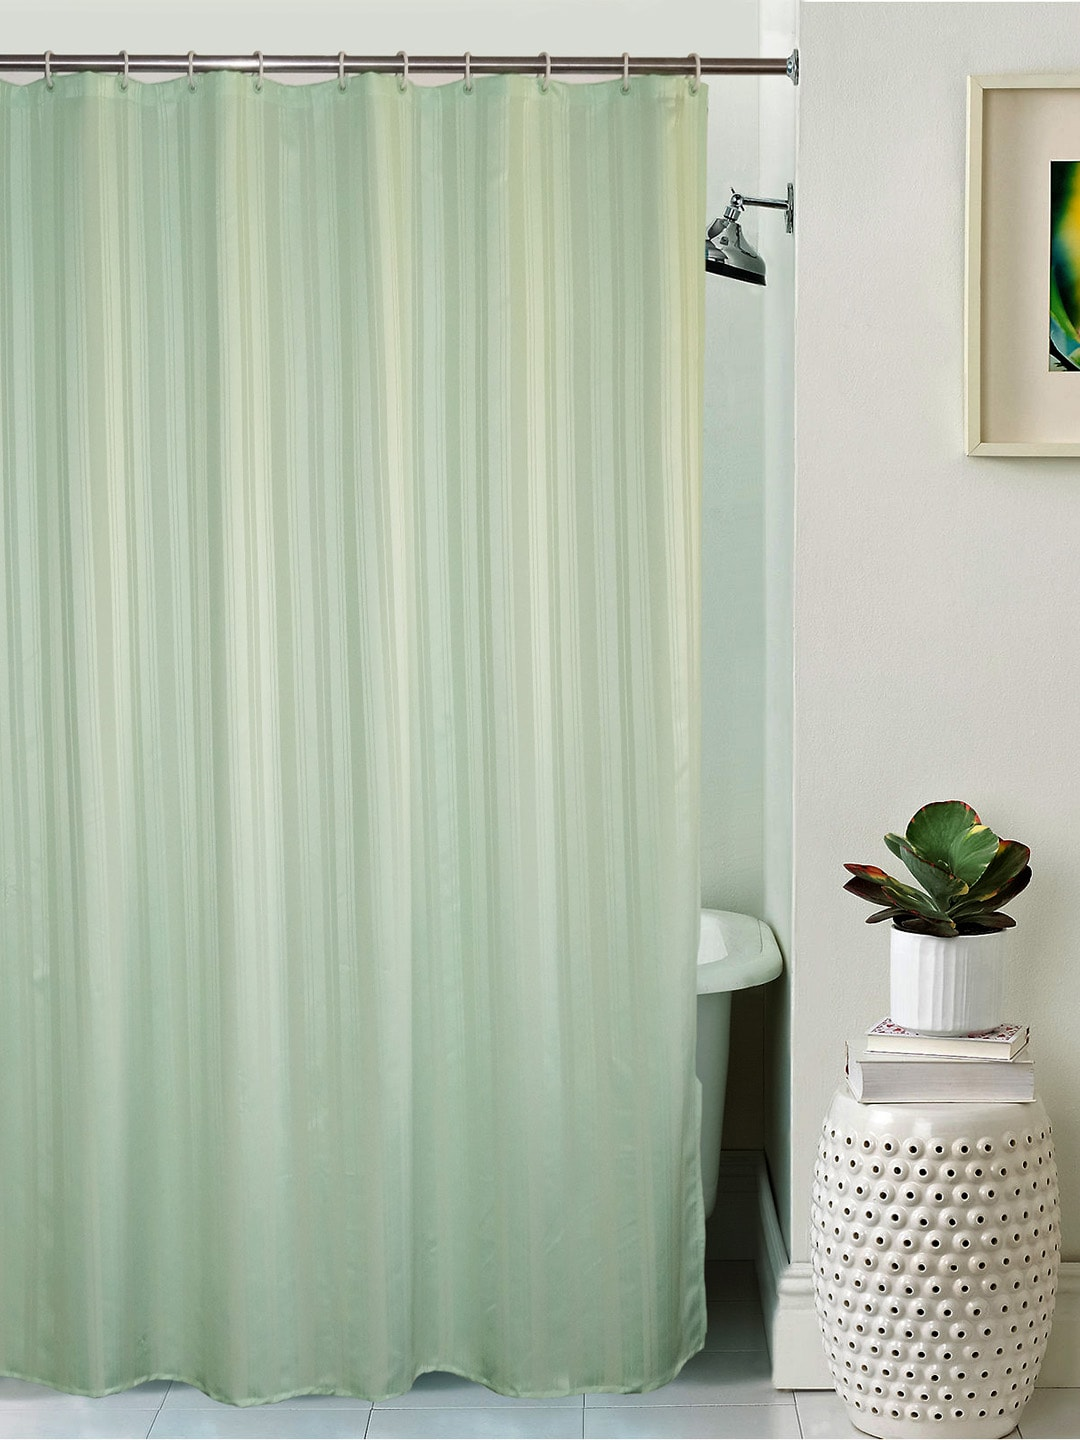 Buy BOMBAY DYEING Green White Colourblocked Shower Curtain